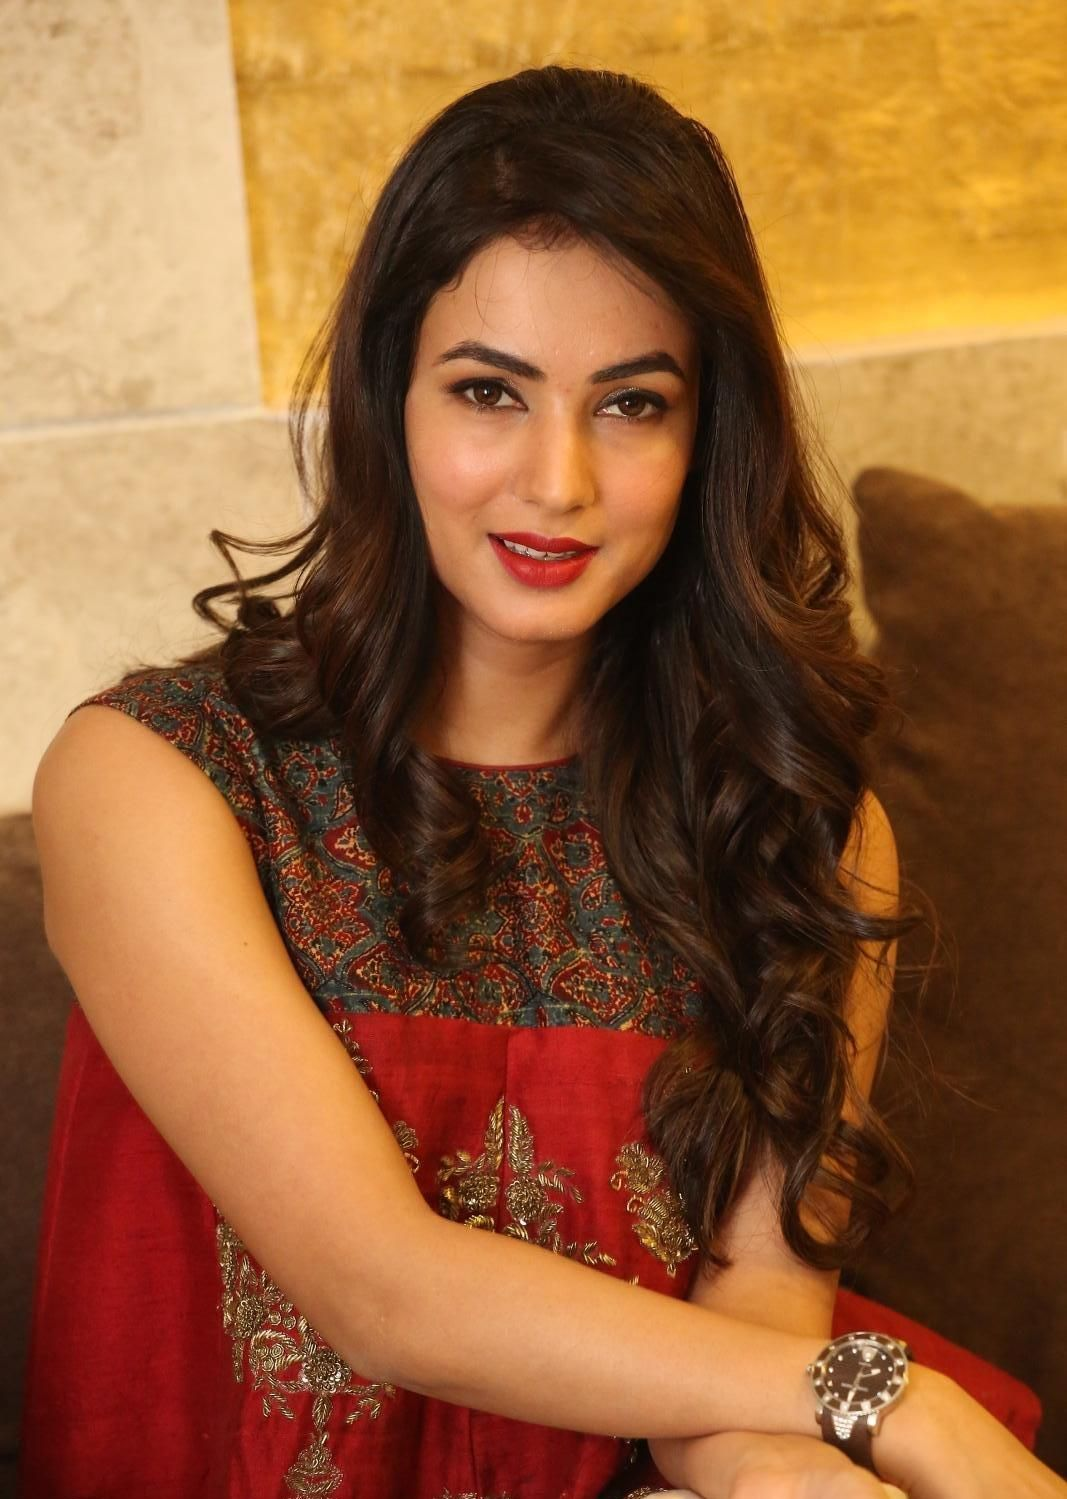 Full HQ Photos of Dictator' Actress Sonal Chauhan Hot Pics